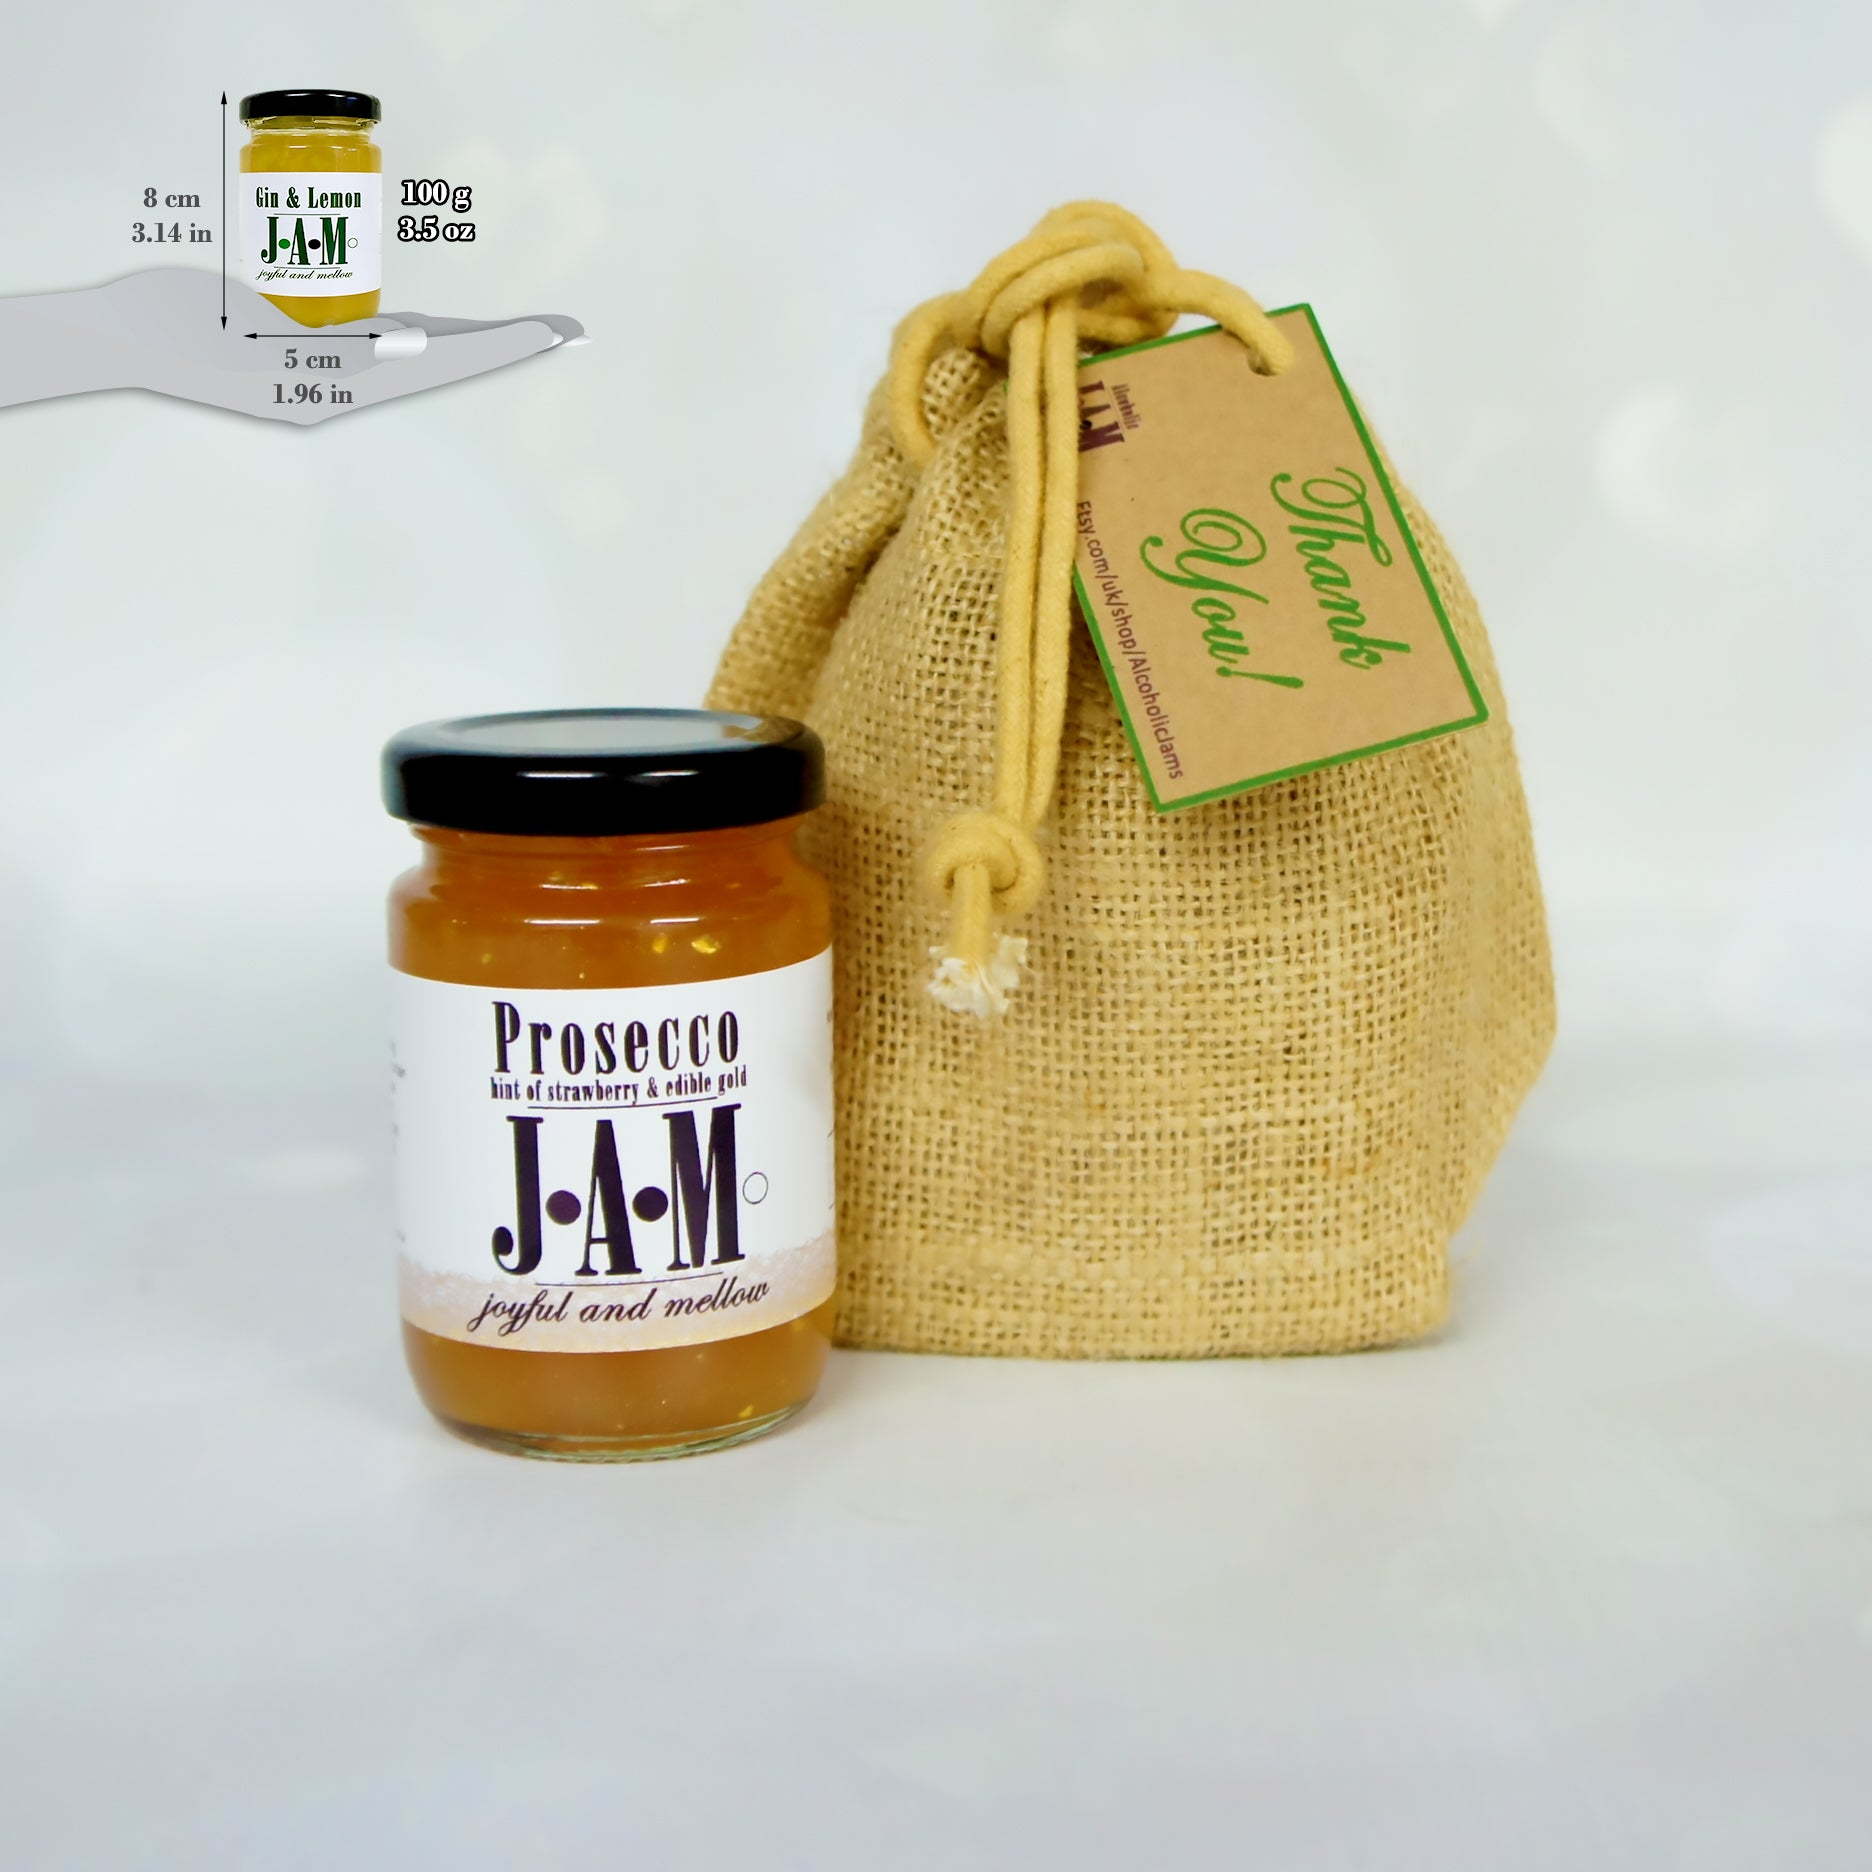 Gift Bag of 1 Alcoholic Jam of your choice: Sloe Gin Jam, Spreadable Gin, Prosecco Jam and More.